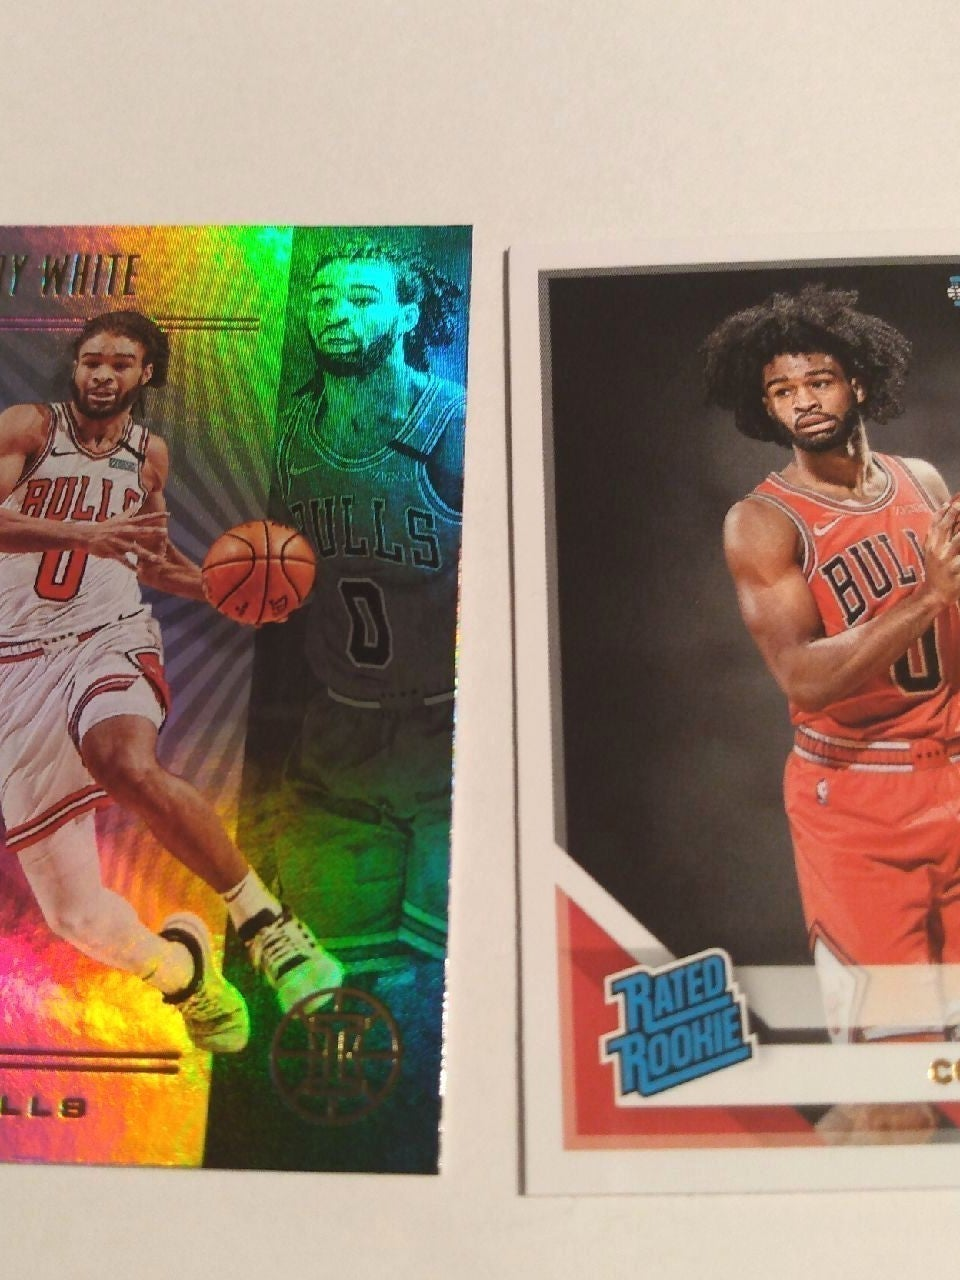 2019-20 Donruss rated rookie Coby White